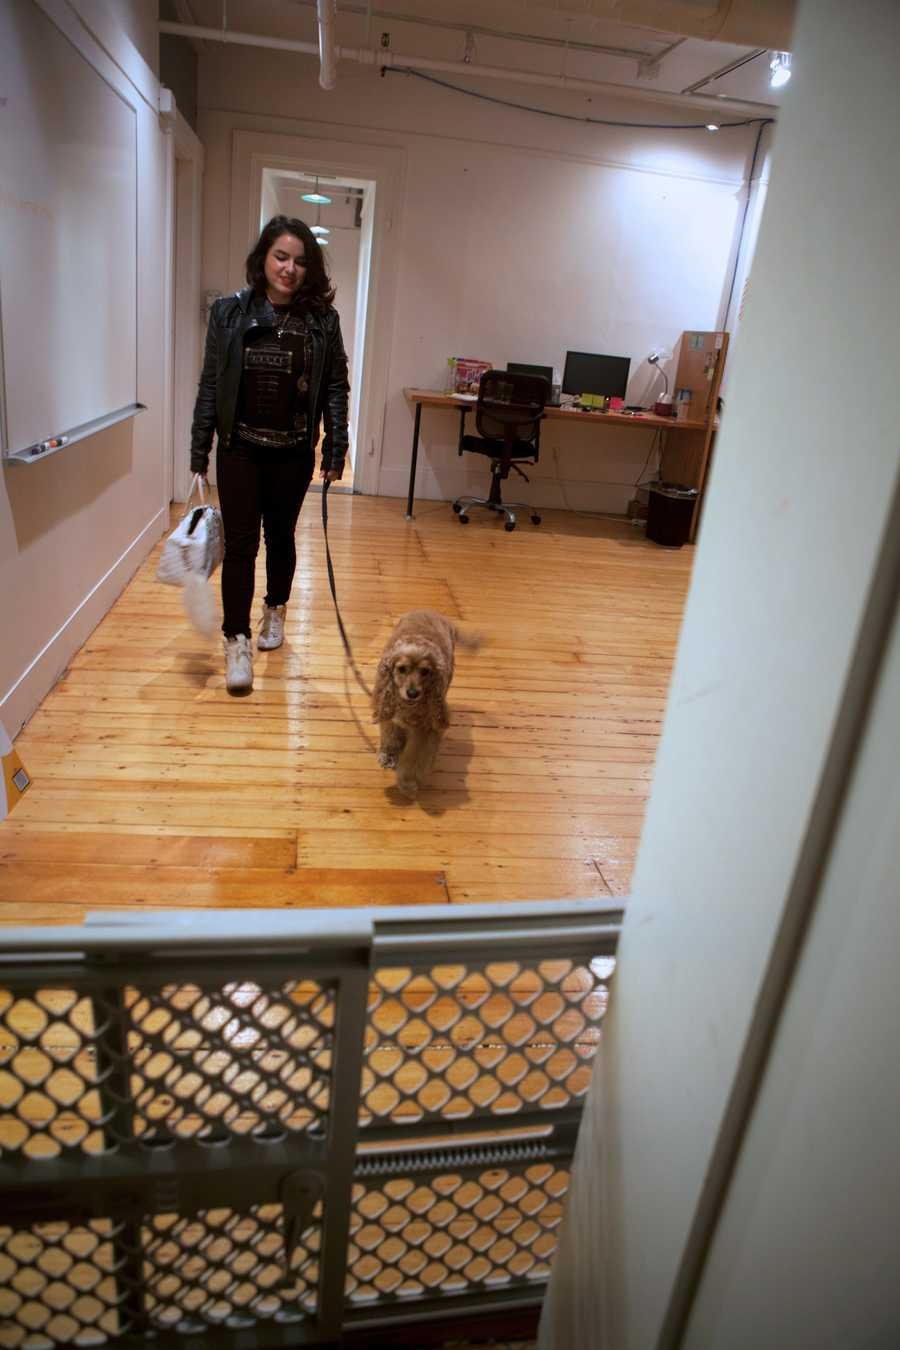 Molina walks out of her company with Charlie after work. Her company has fences at different doorways, to keep their dogs from running away.